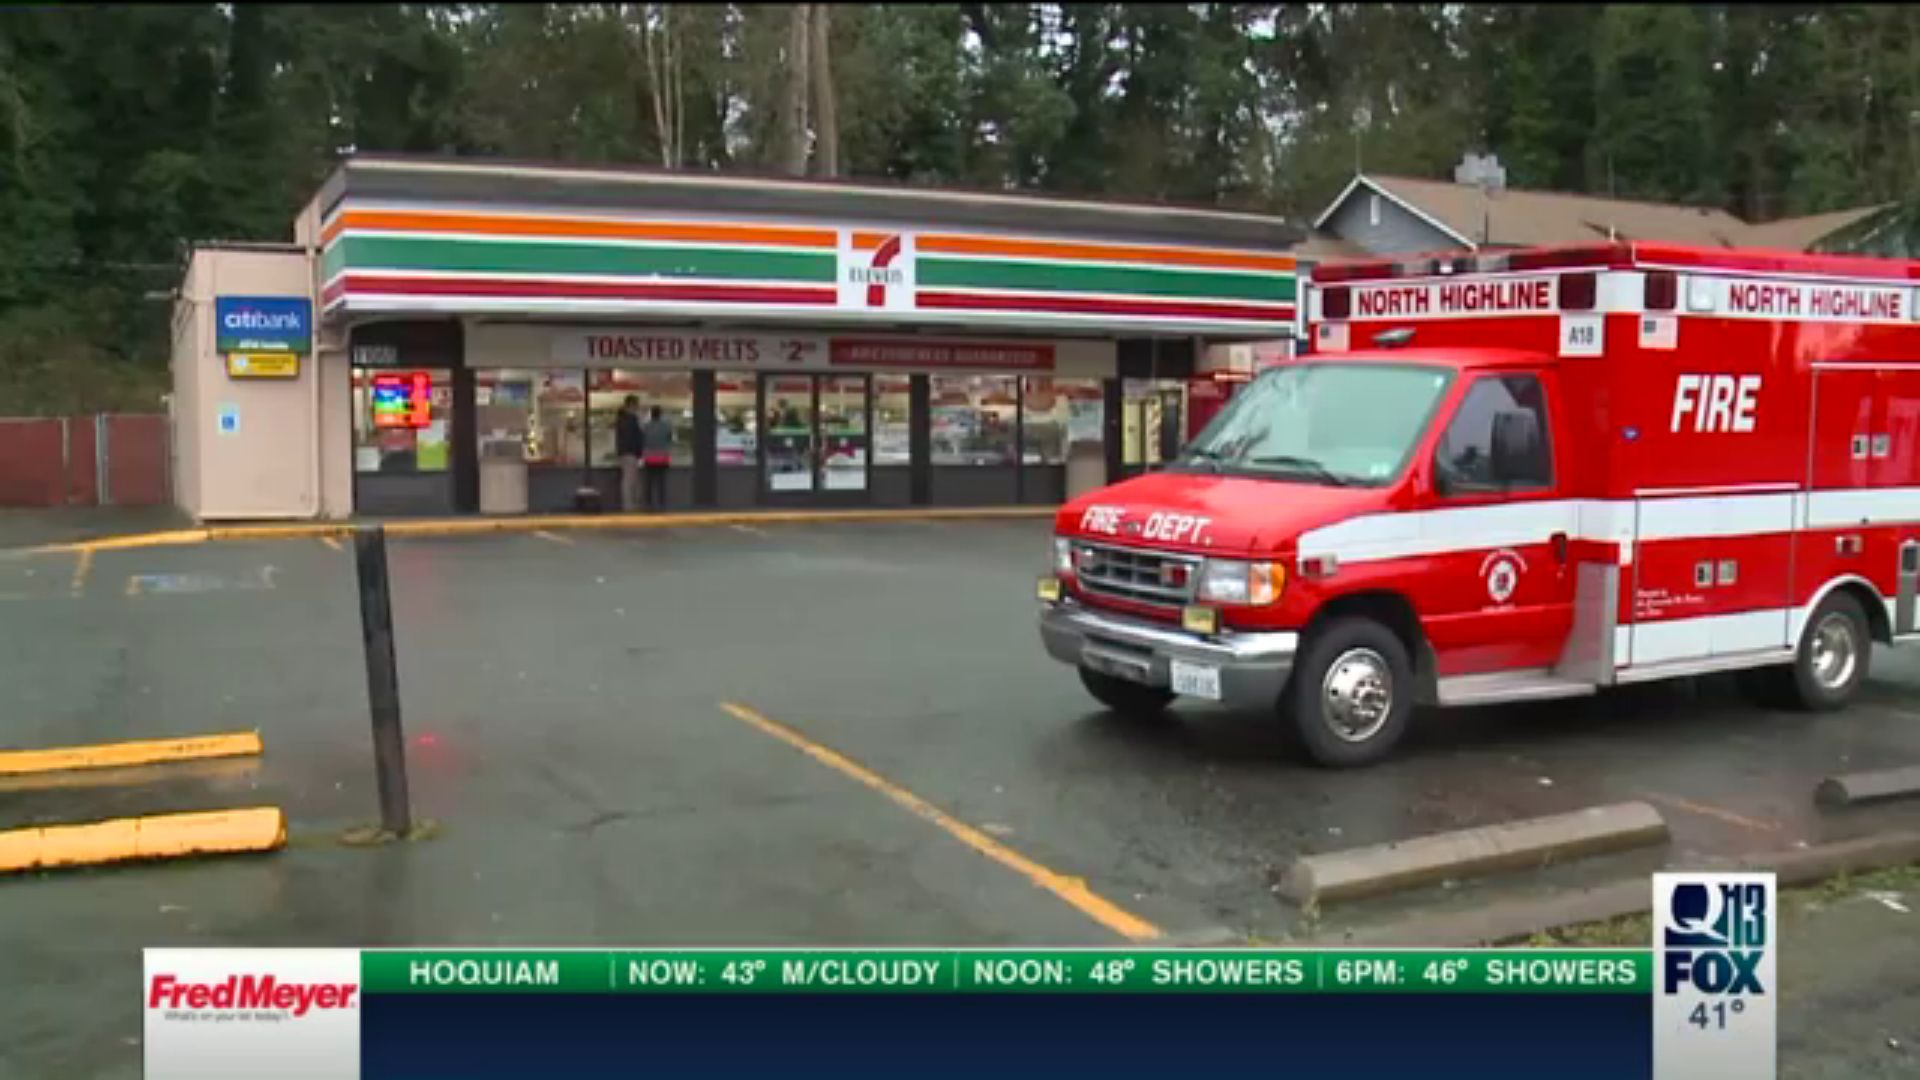 A masked man, armed with a hatchet, was fatally shot Sunday morning after entering a Washington state 7-11 and slashing a clerk.